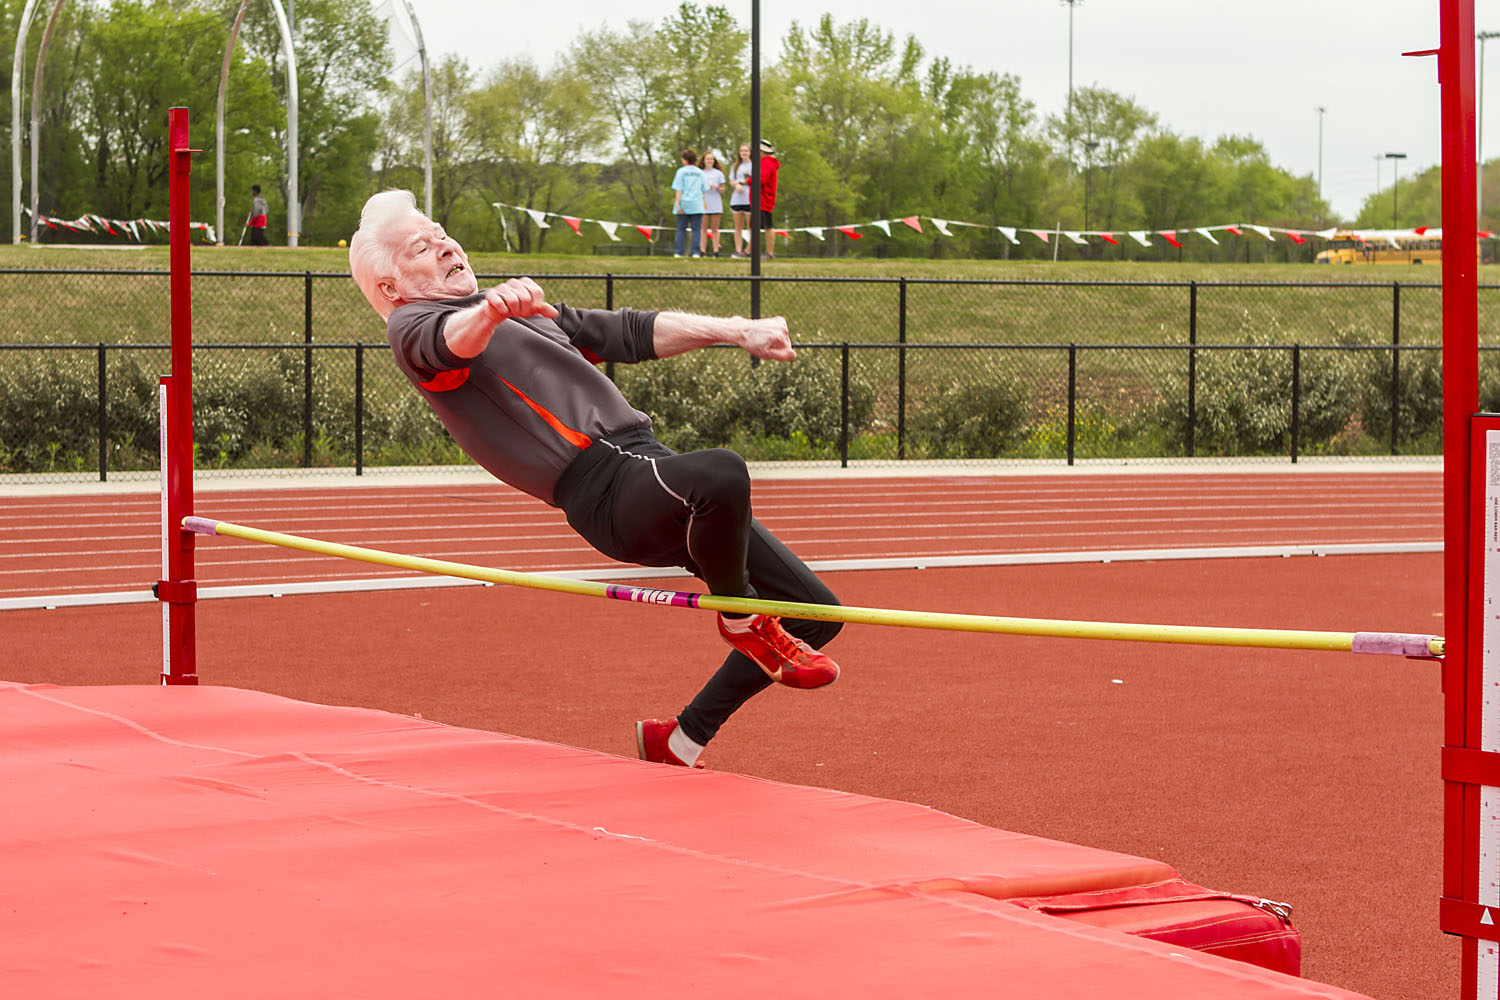 More than 200 seniors storm Trussville to show off athletic abilities